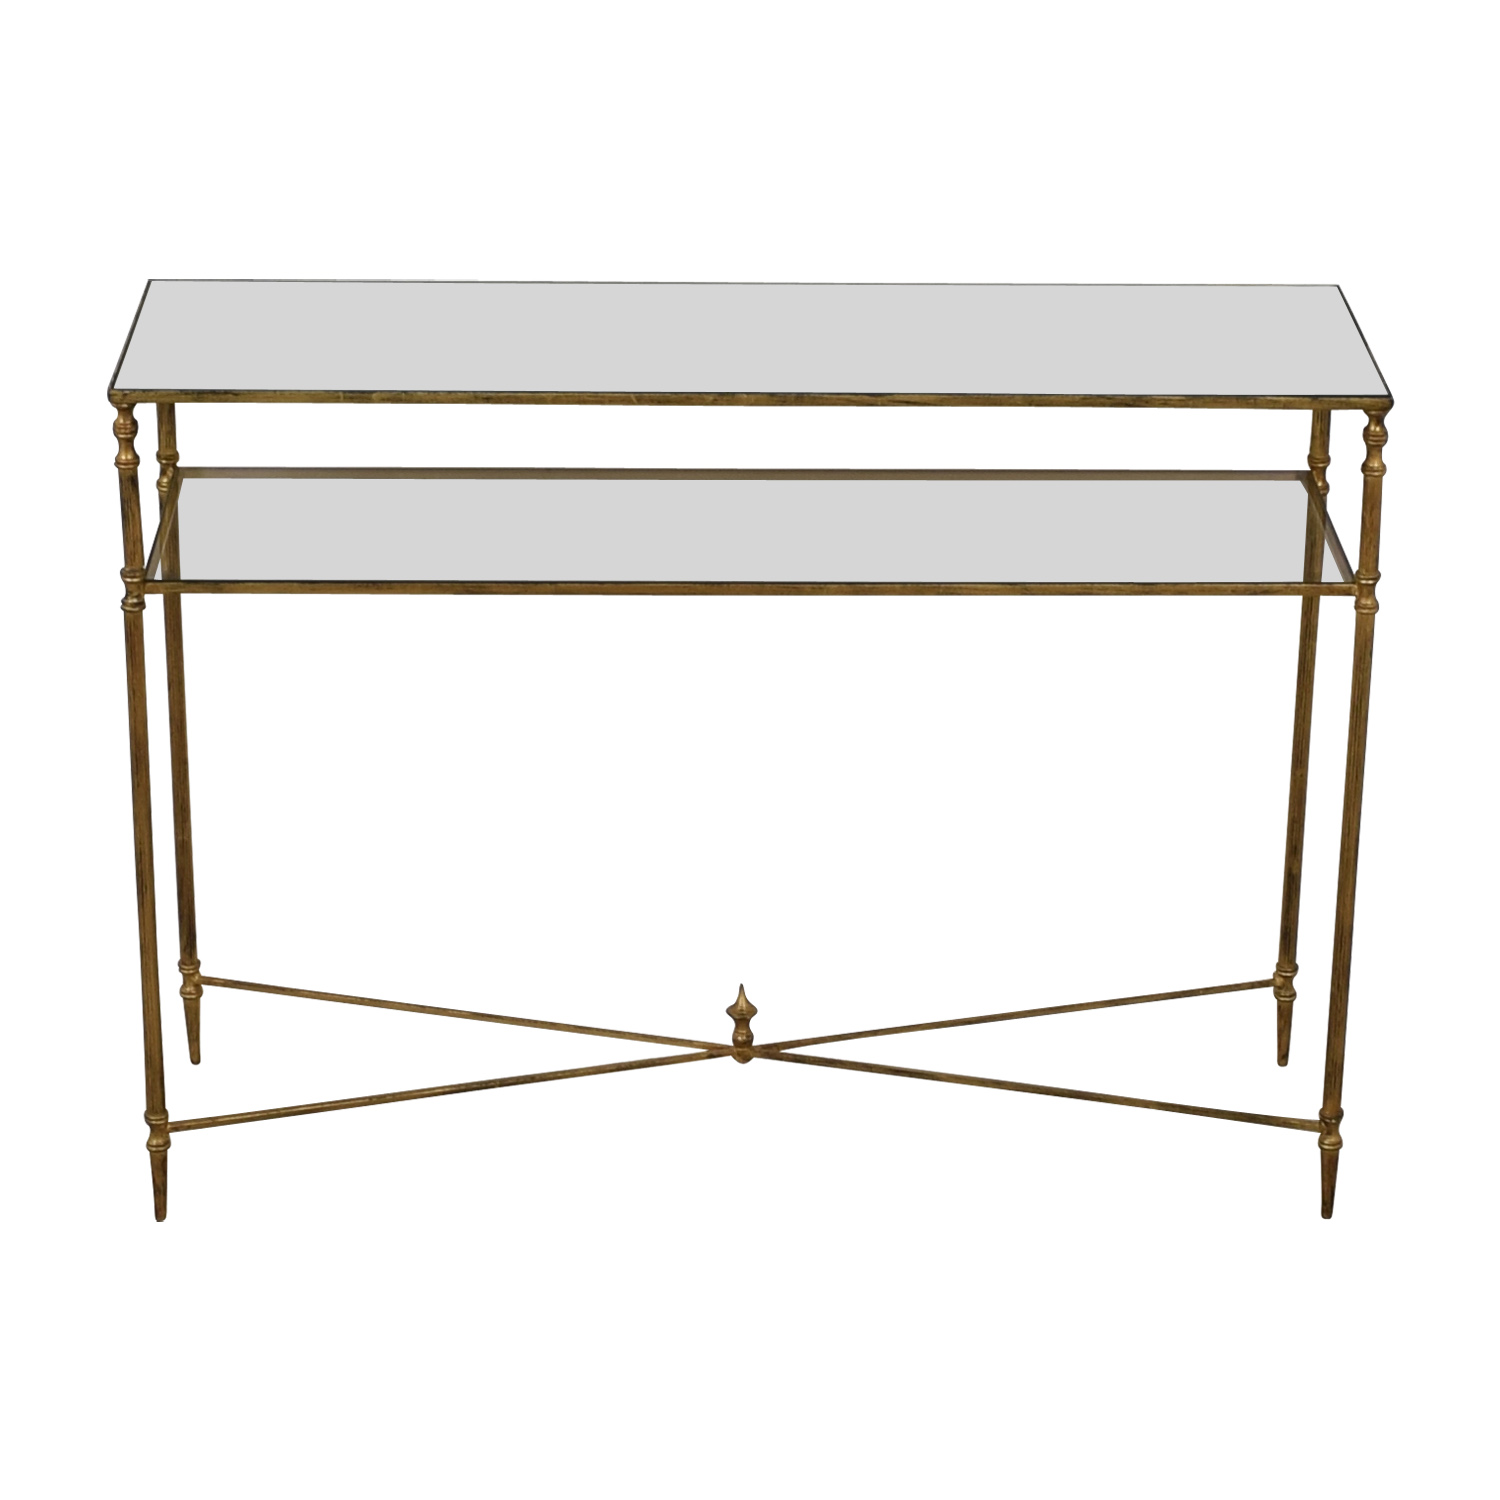 - 82% OFF - Gold And Glass Accent Table / Tables